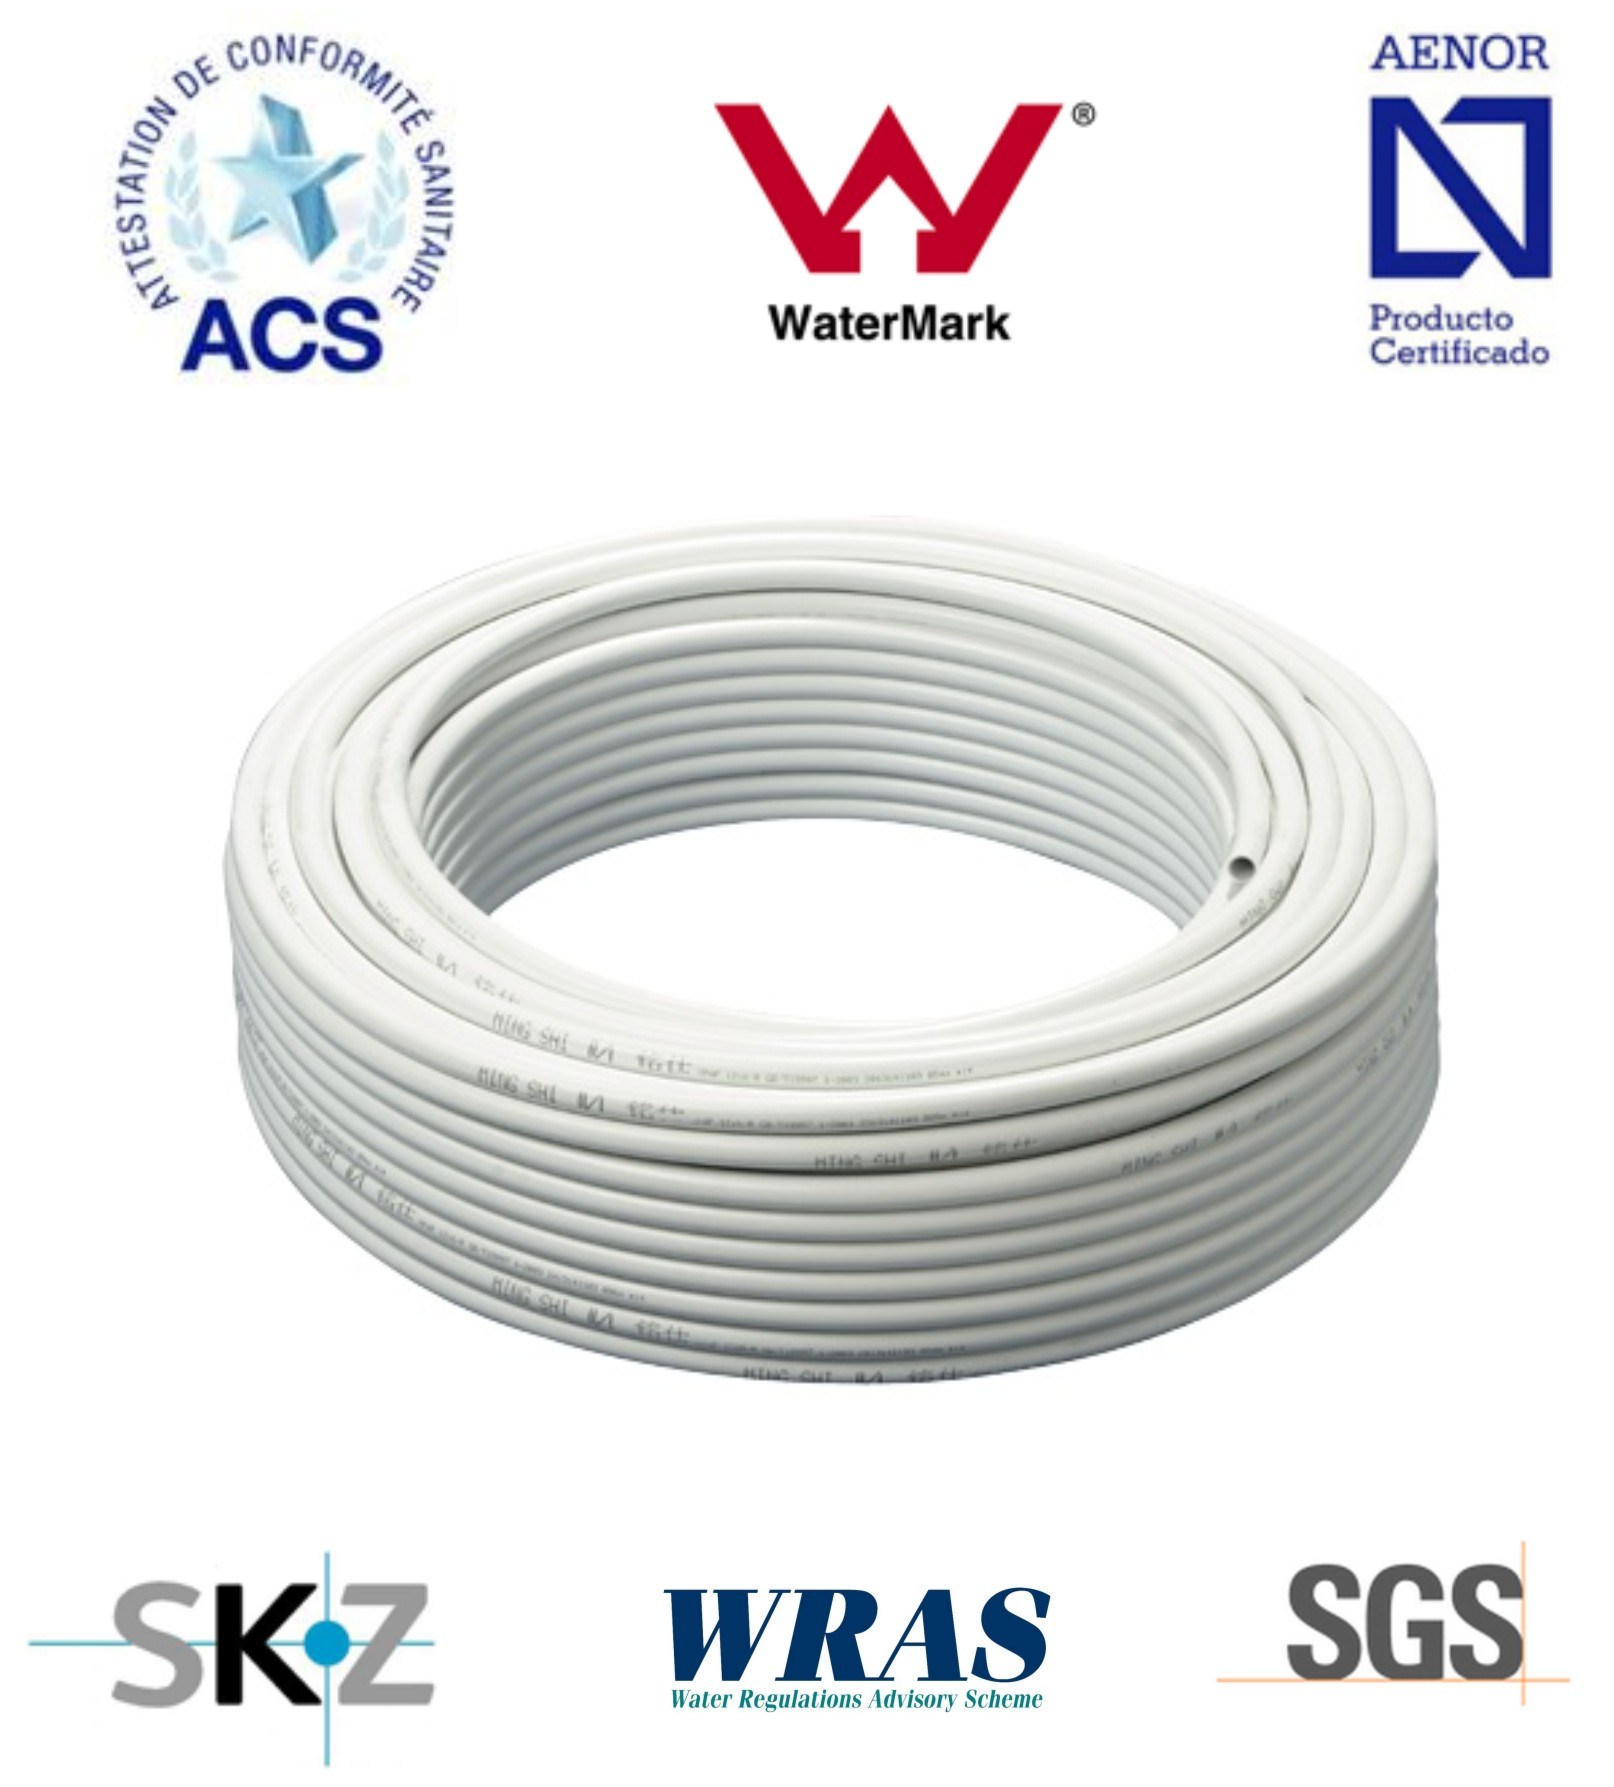 Pex al pex pipe for hot water overlapped china cixi for Pex for hot water